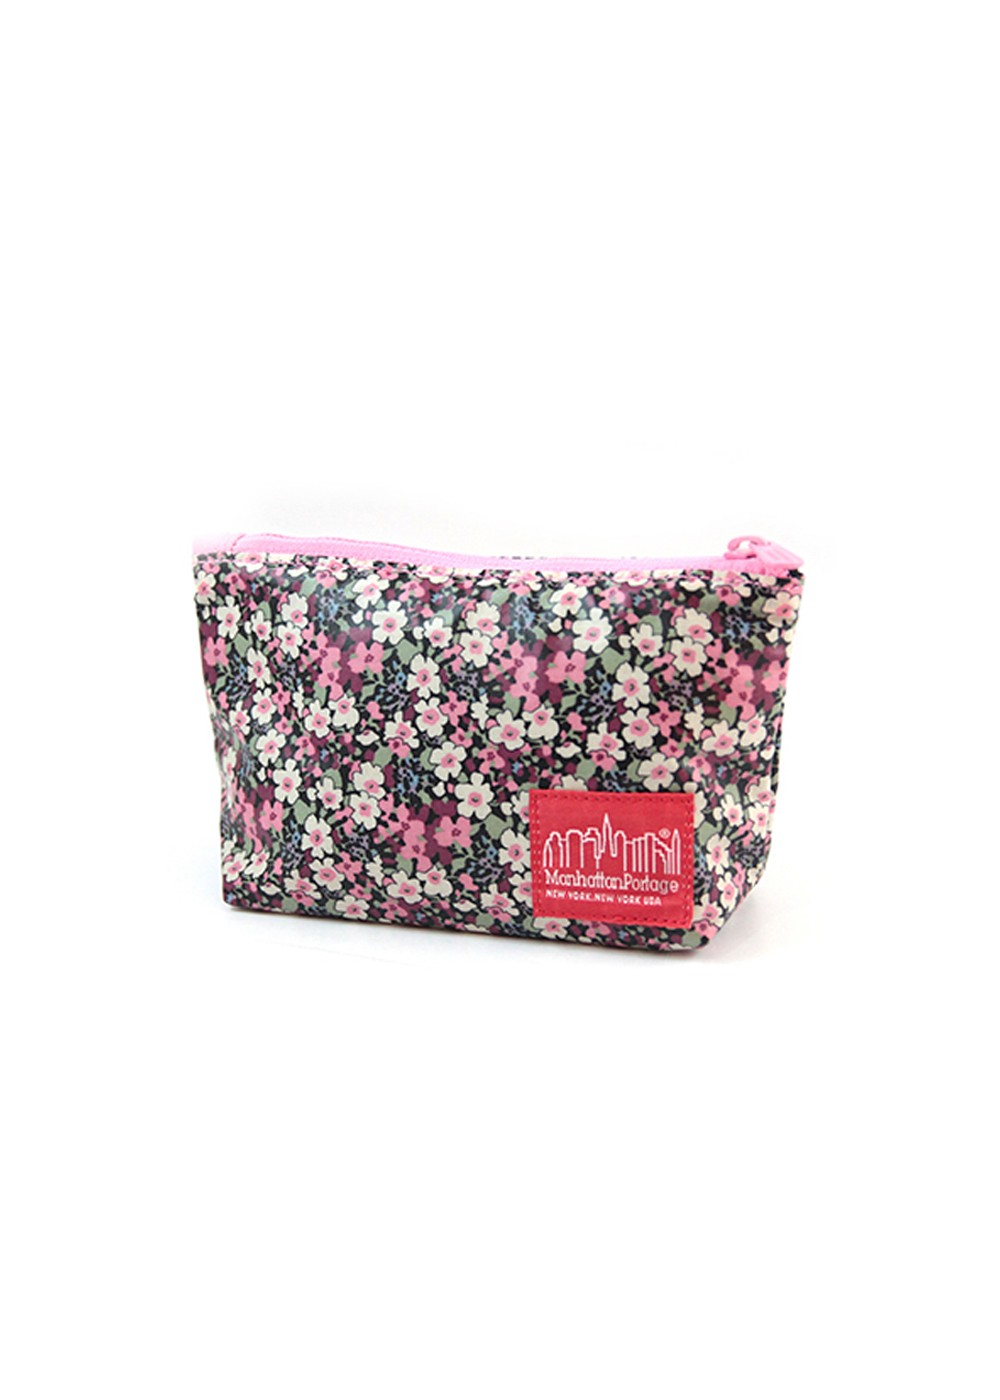 【5/15新着】Liberty Art Fabric Nylon Clutch|ブラック/ピンク|ポーチ|Travel &  Resort